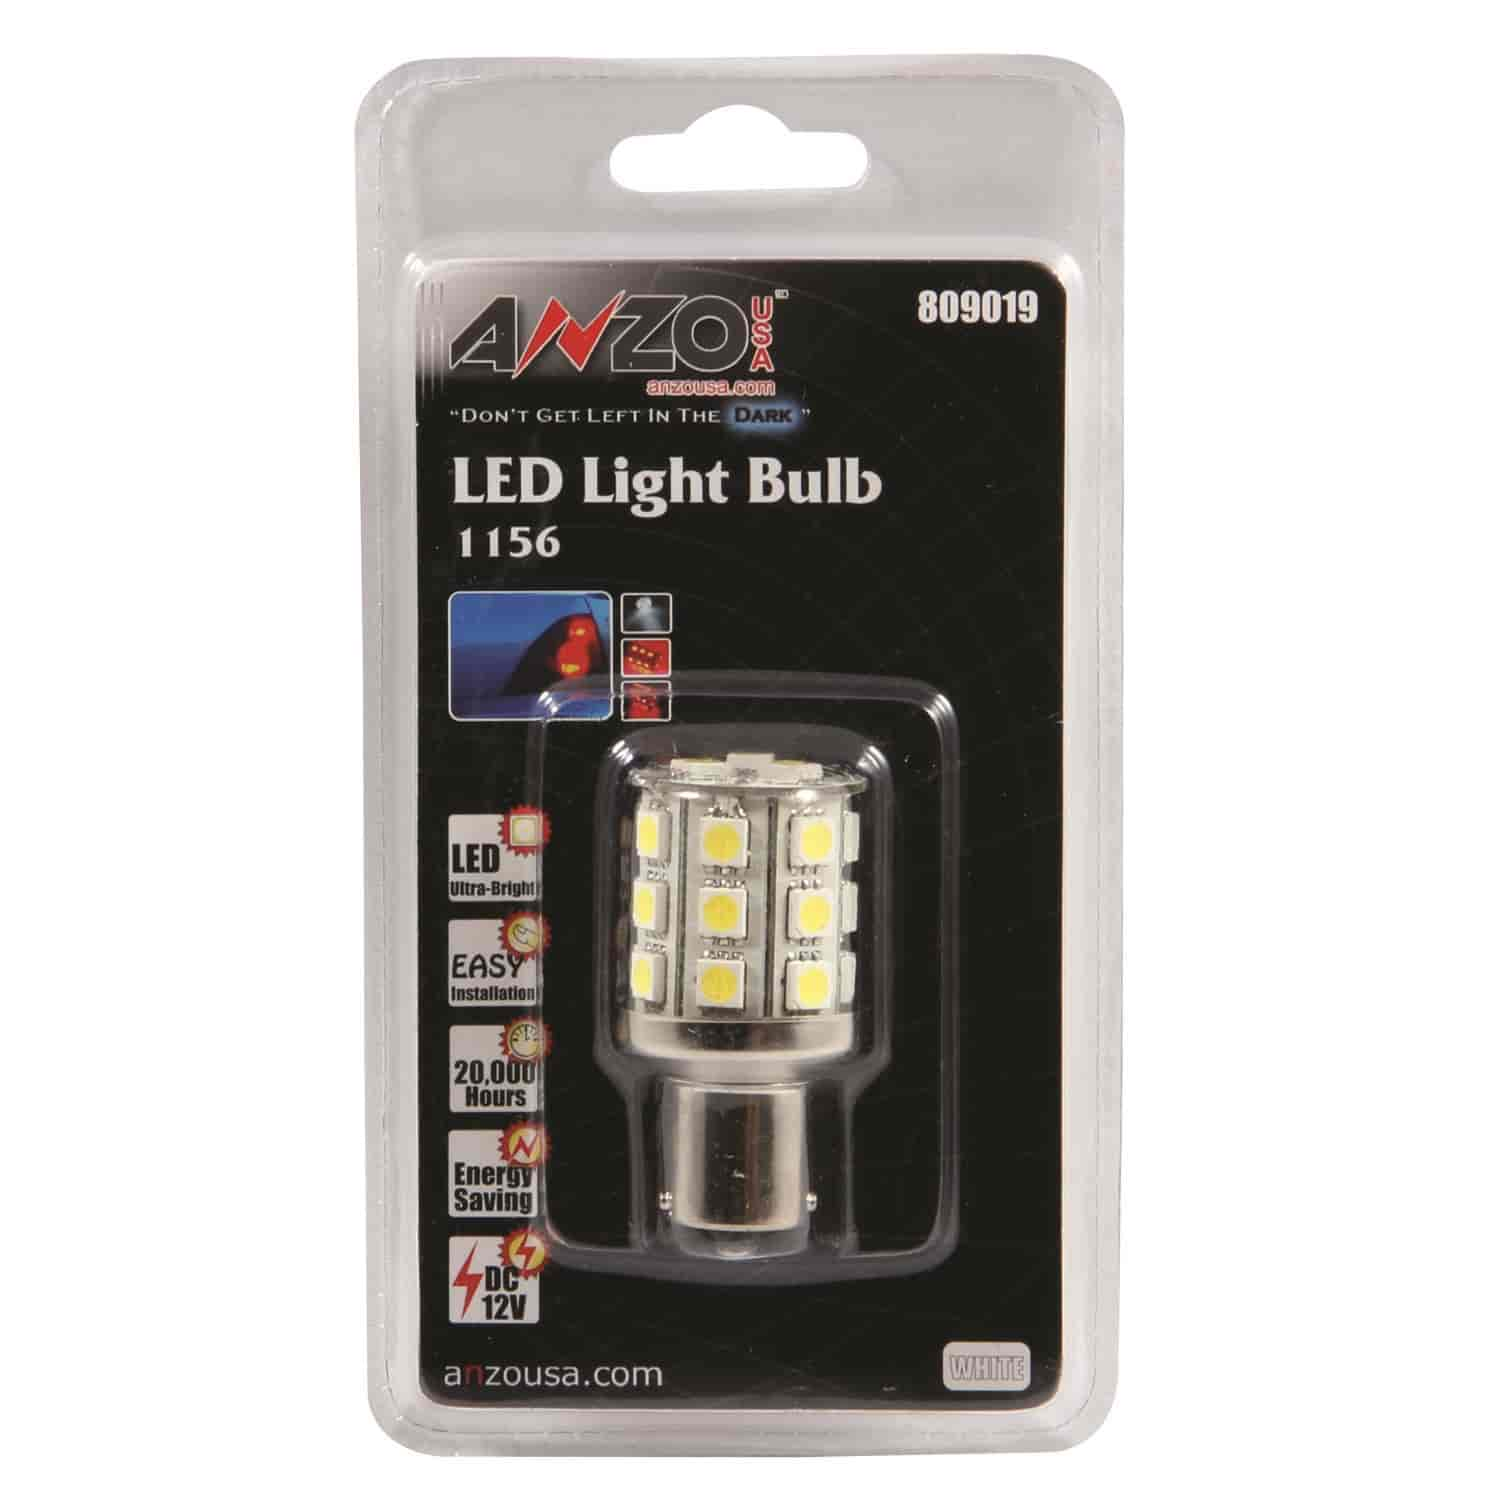 Anzo 809019 - Anzo LED Universal Light Bulbs